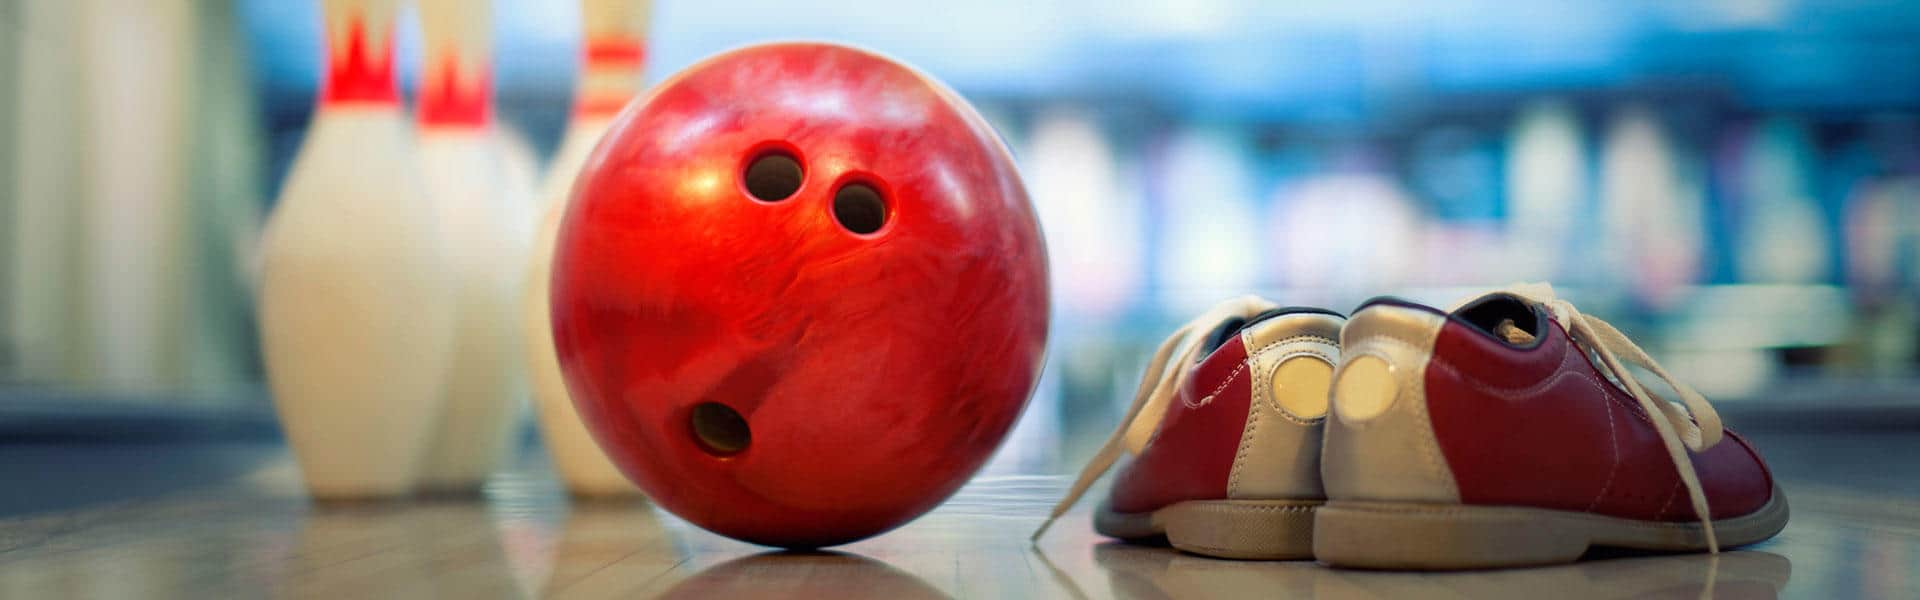 Best Bowling Balls For 2018 – Buying Guide for Consumers